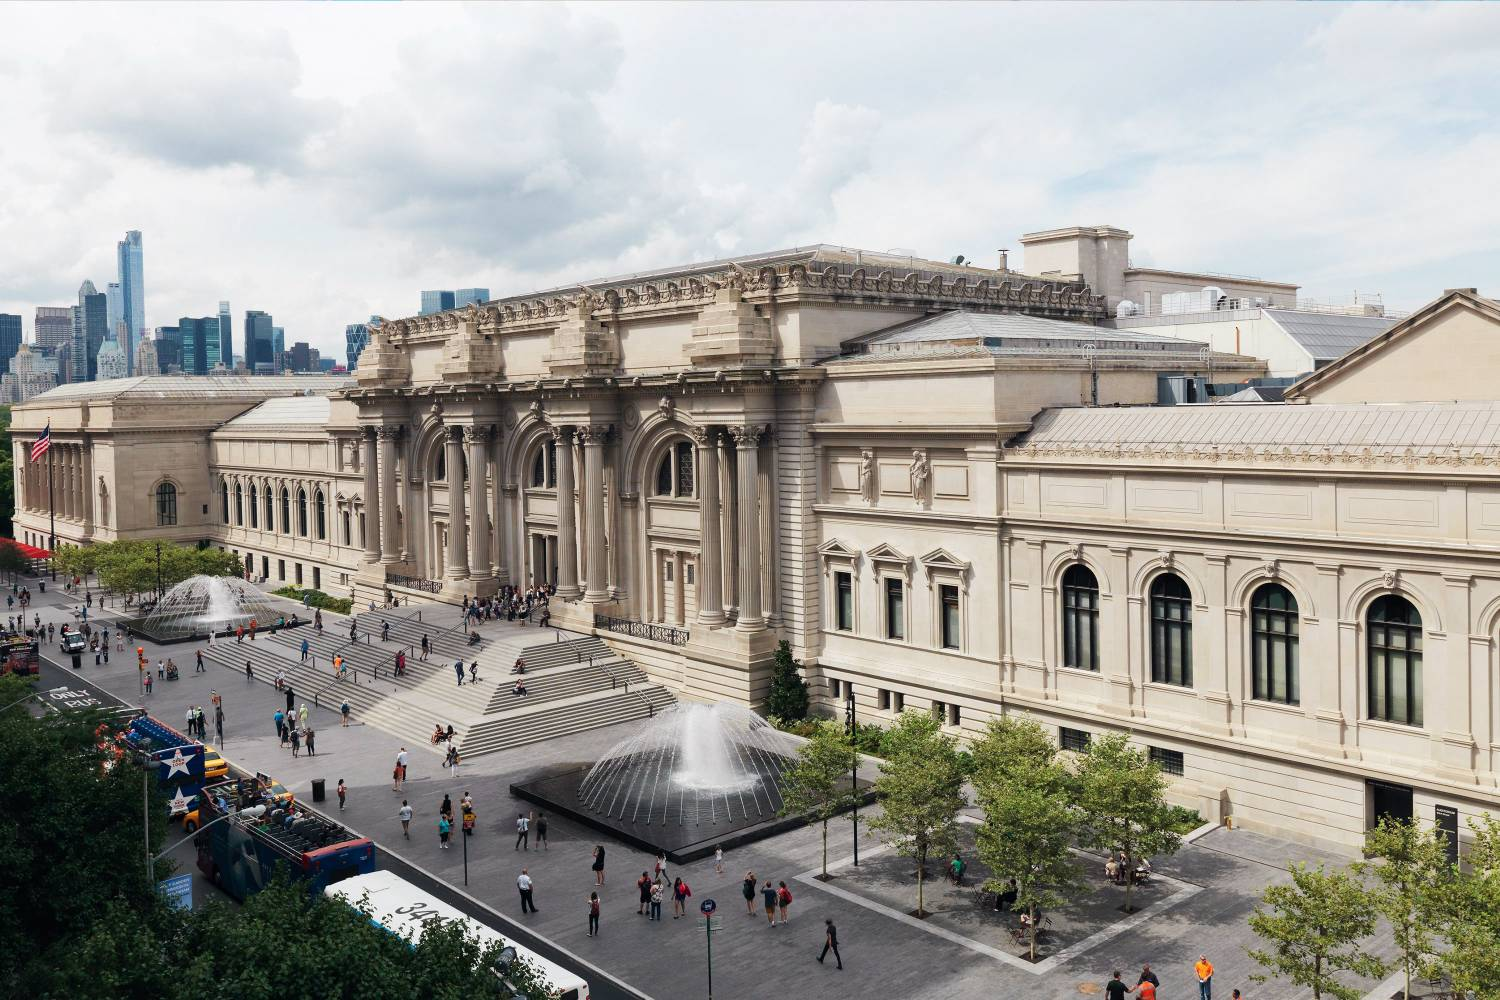 Birdseye view of the Metropolitan Museum of Art in Museum Mile NYC